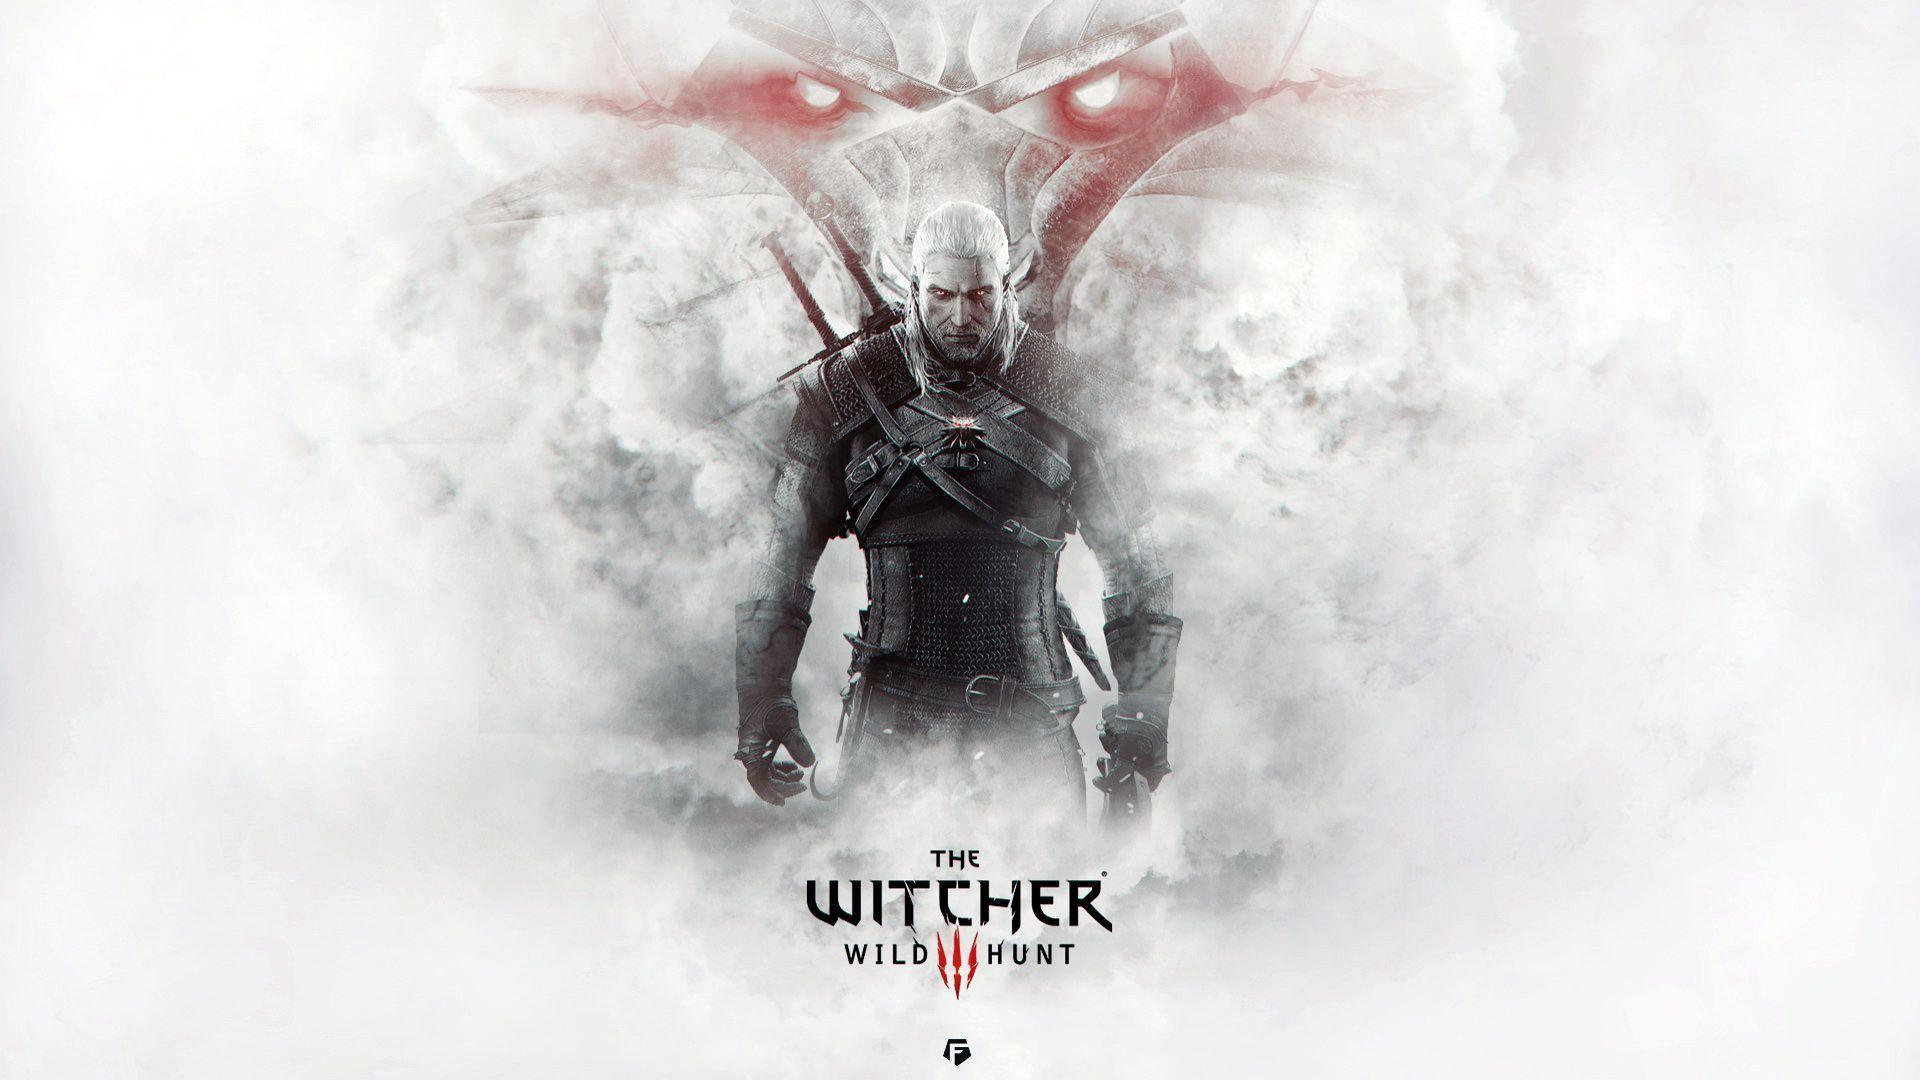 The Witcher 3 Wild Hunt wallpapers – wallpapers free download